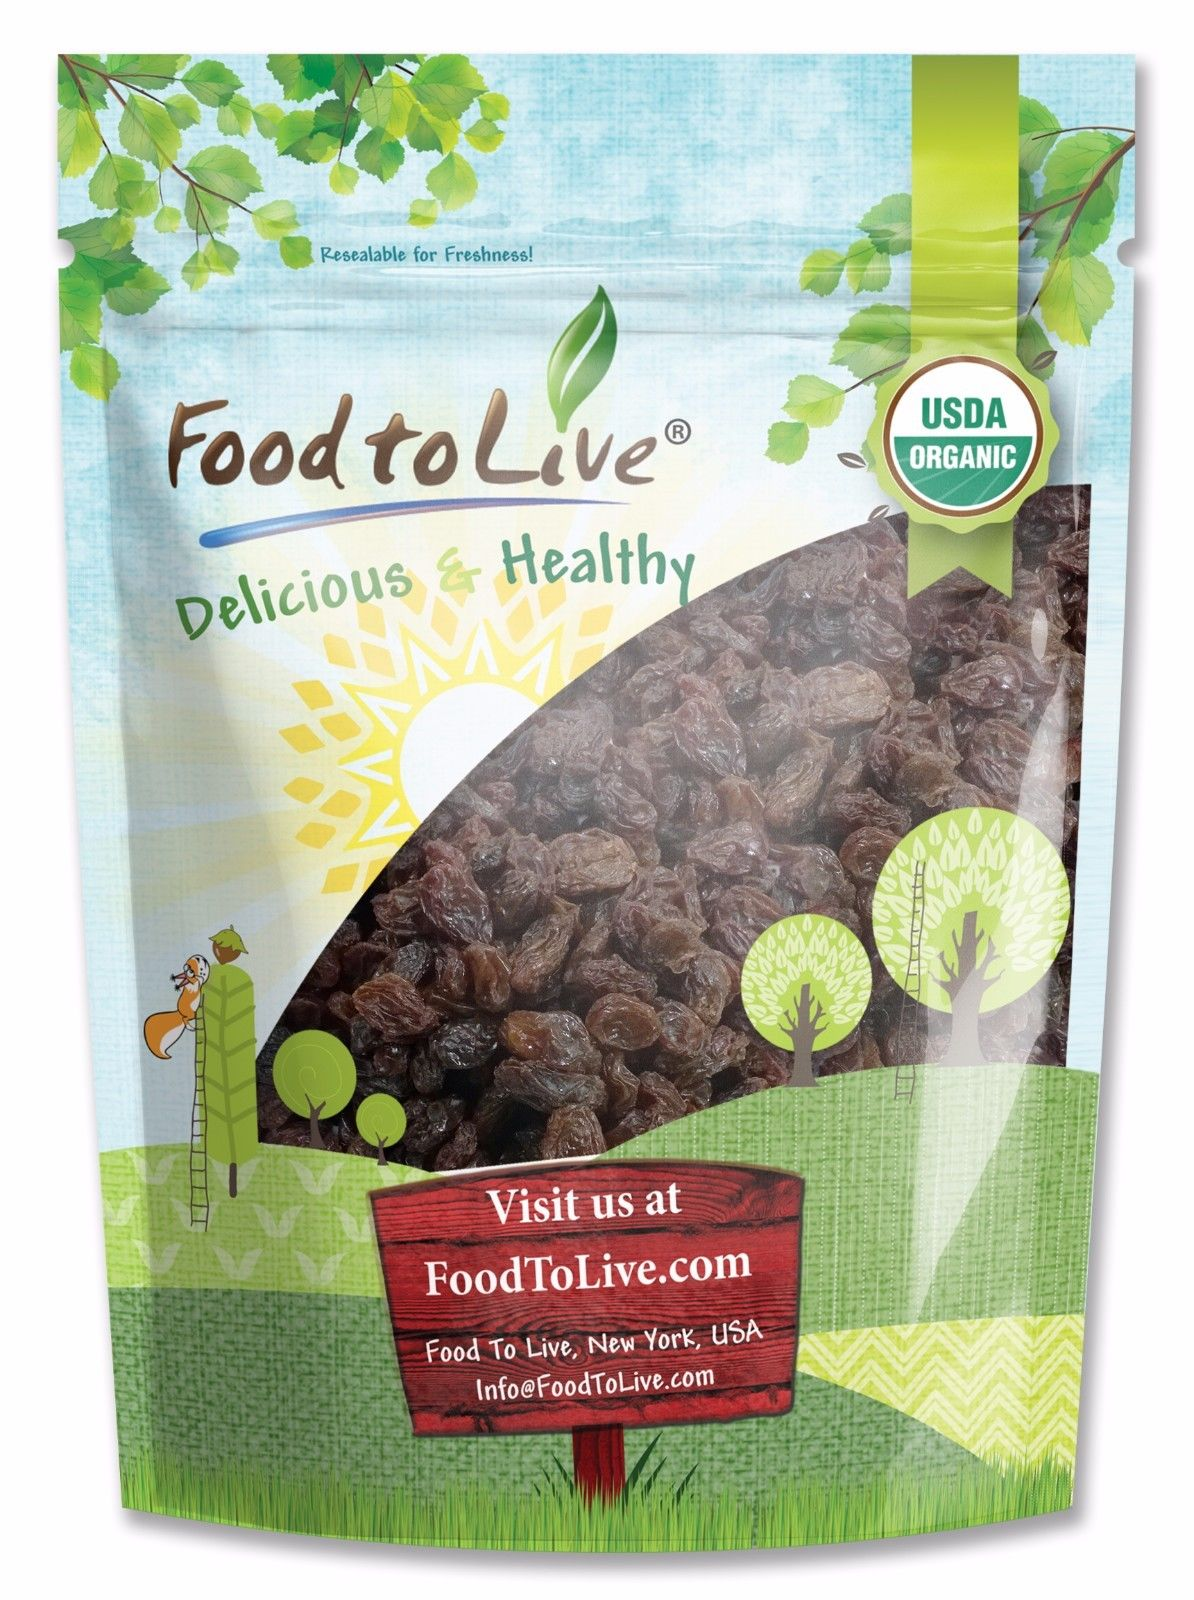 Food To Live ® Organic California Thompson Seedless Raisins (Sun-Dried, Non-GMO, Unsulphured, Bulk) (2 Pounds)